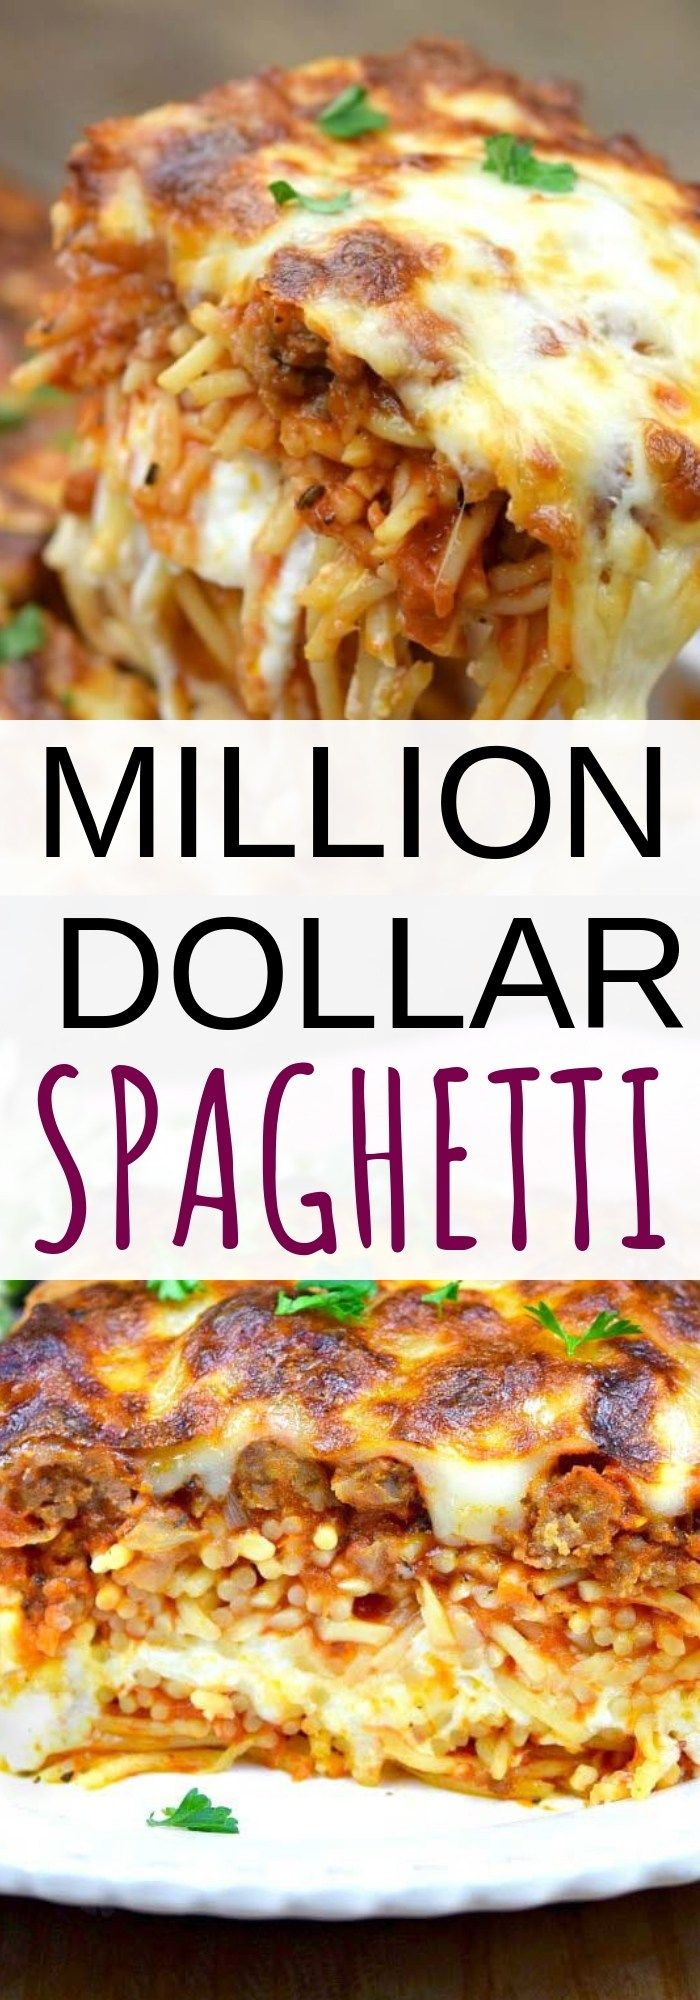 MILLION DOLLAR SPAGHETTI – Net Feed Daily